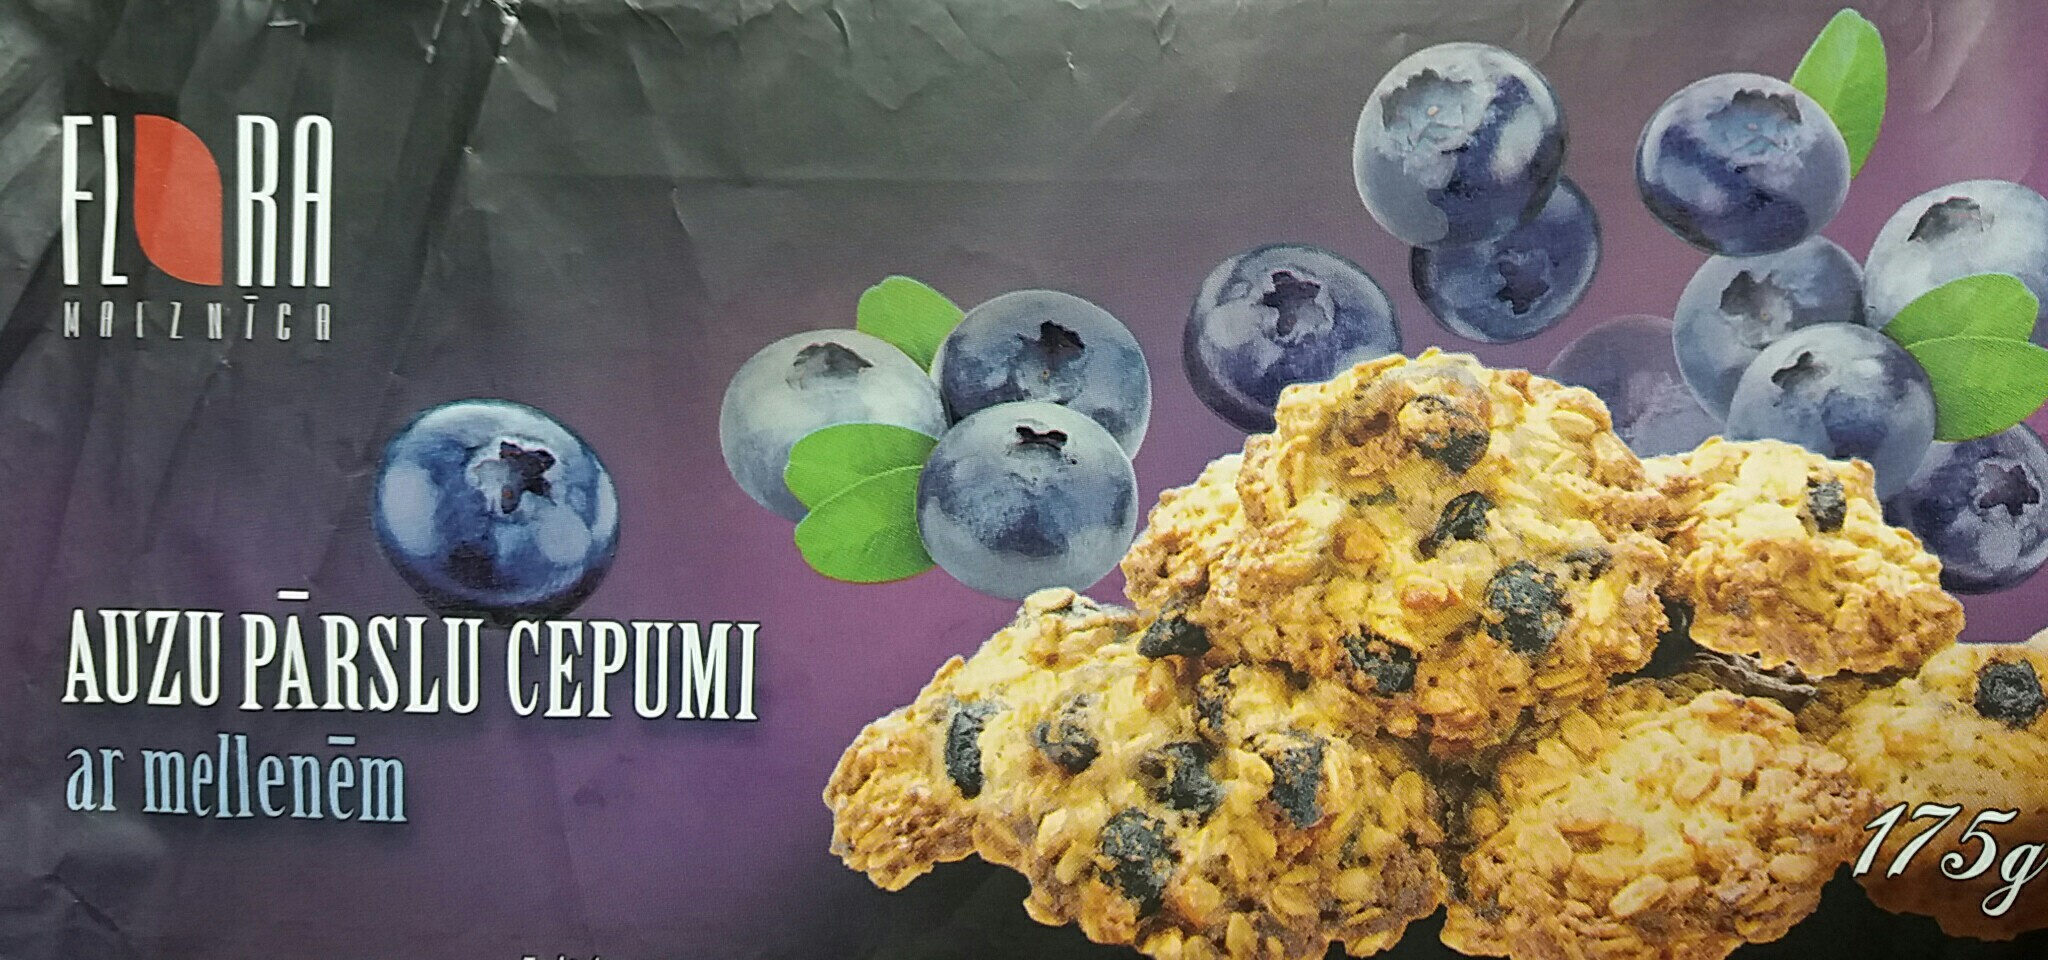 Rolled oat biscuits with blueberries - Prodotto - en